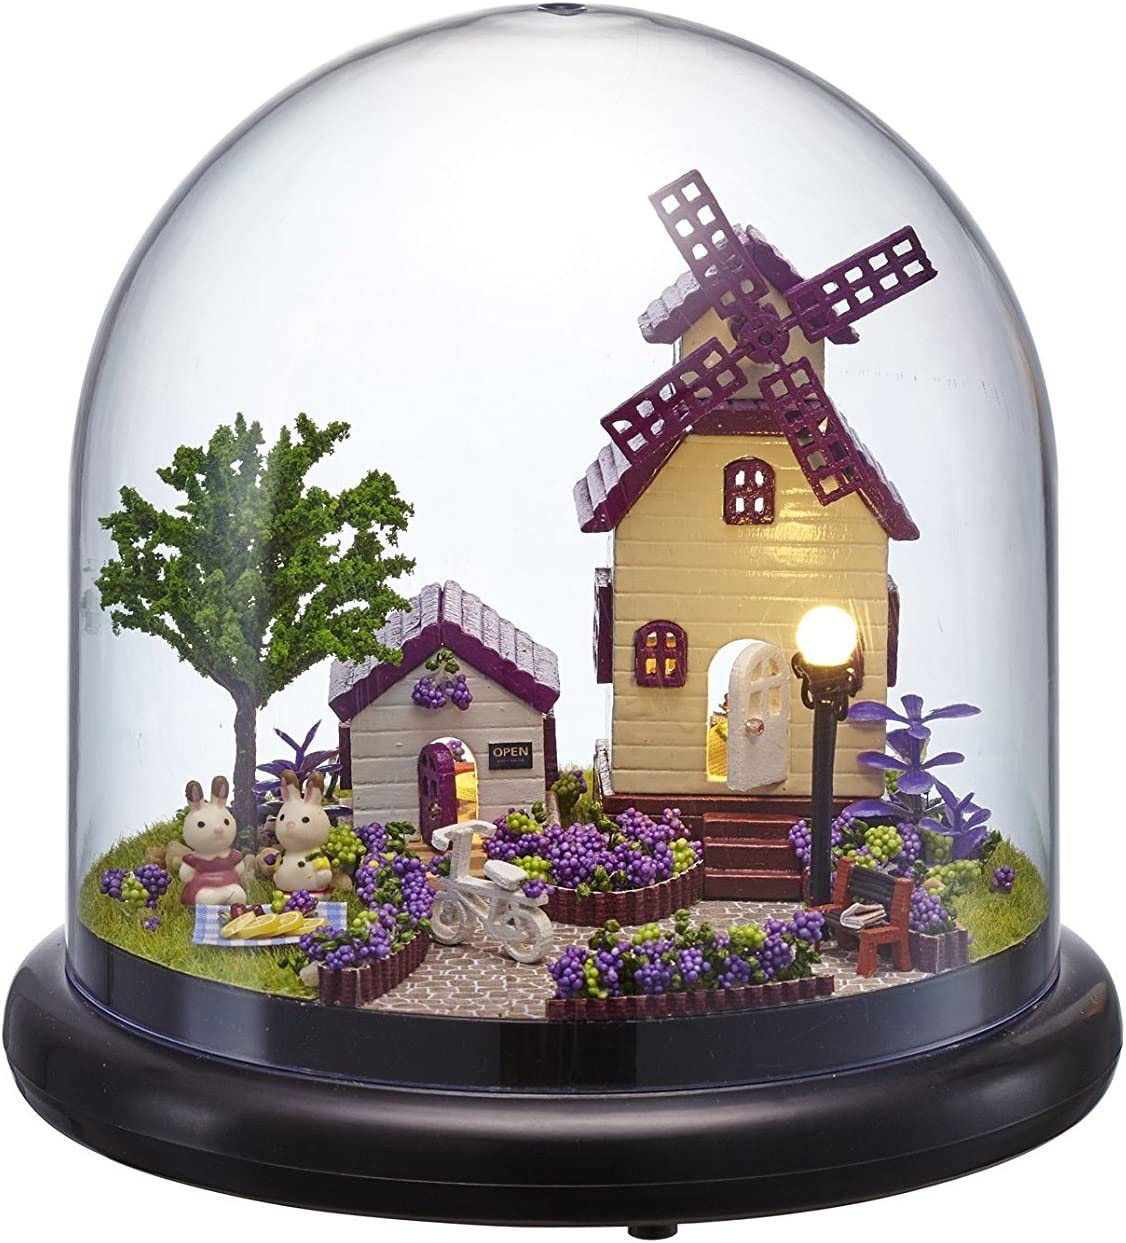 Rylai Architecture Model Building Kits with Furniture LED Music Box Miniature Wooden Dollhouse The Provence Series 3D Puzzle Challenge